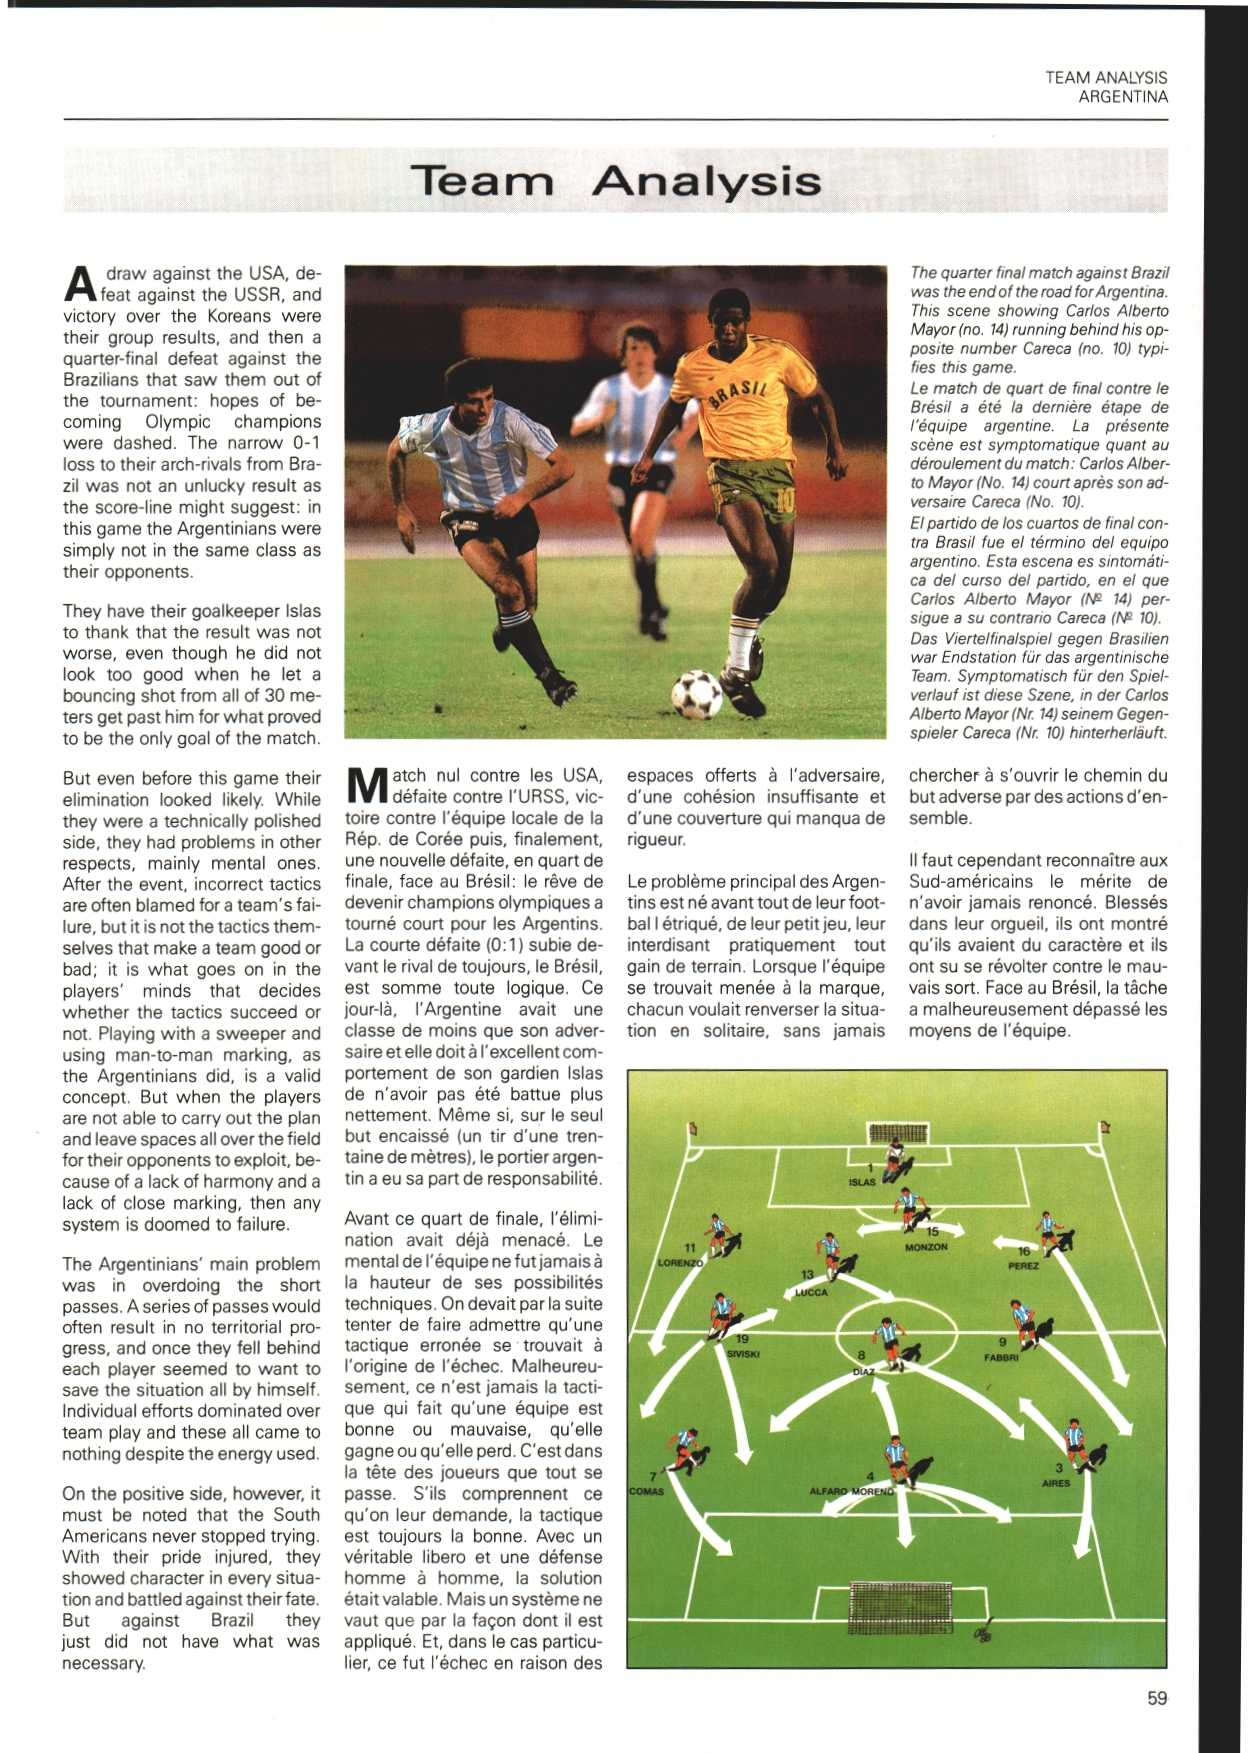 TEAM ANALYSIS ARGENTINA Team Analysis A draw against the USA, defeat against the USSR, and victory over the Koreans were their group results, and then a quarter-final defeat against the Brazilians